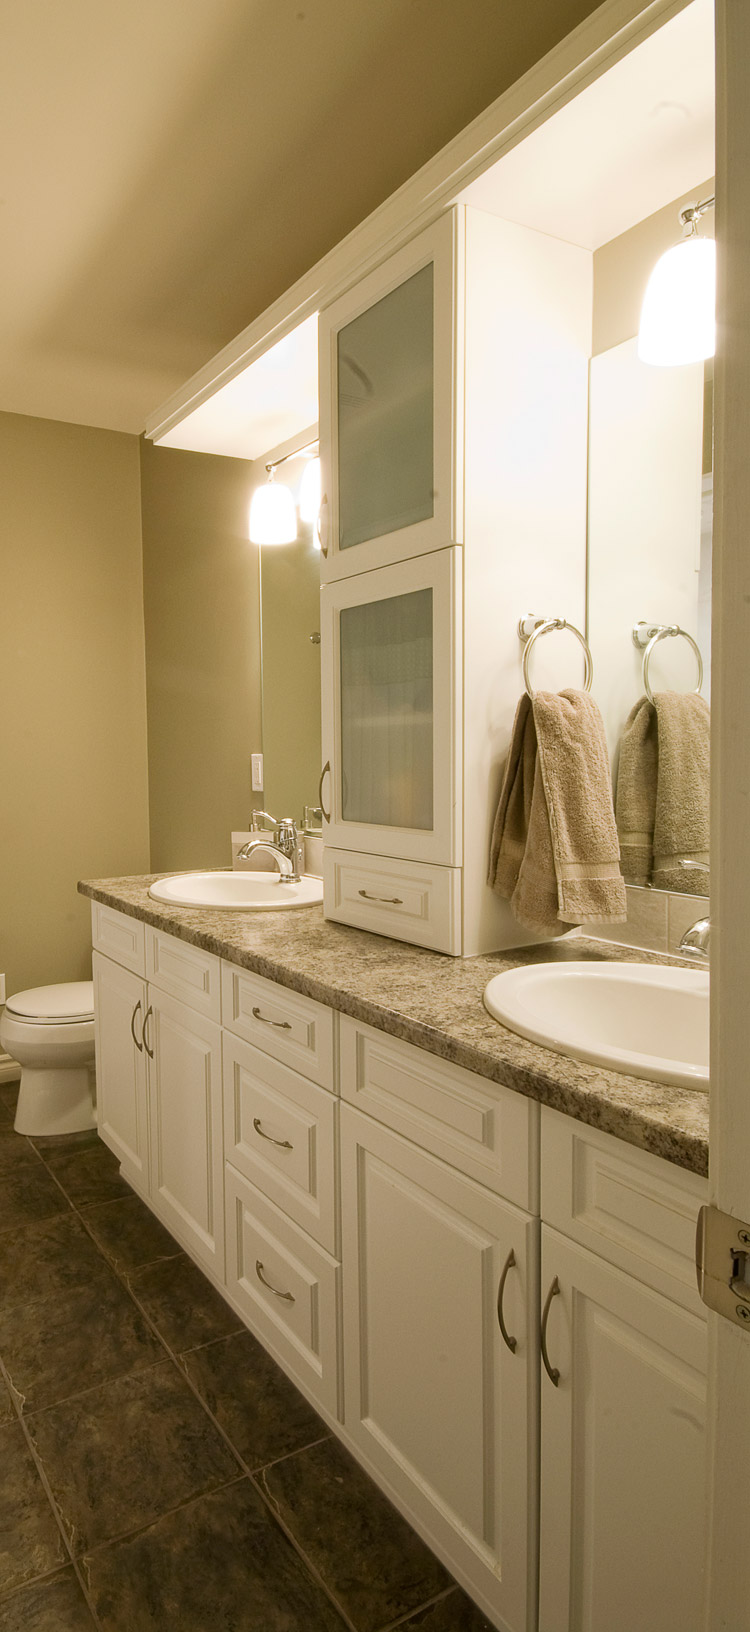 bathroom design with duo sinks and lots of storage